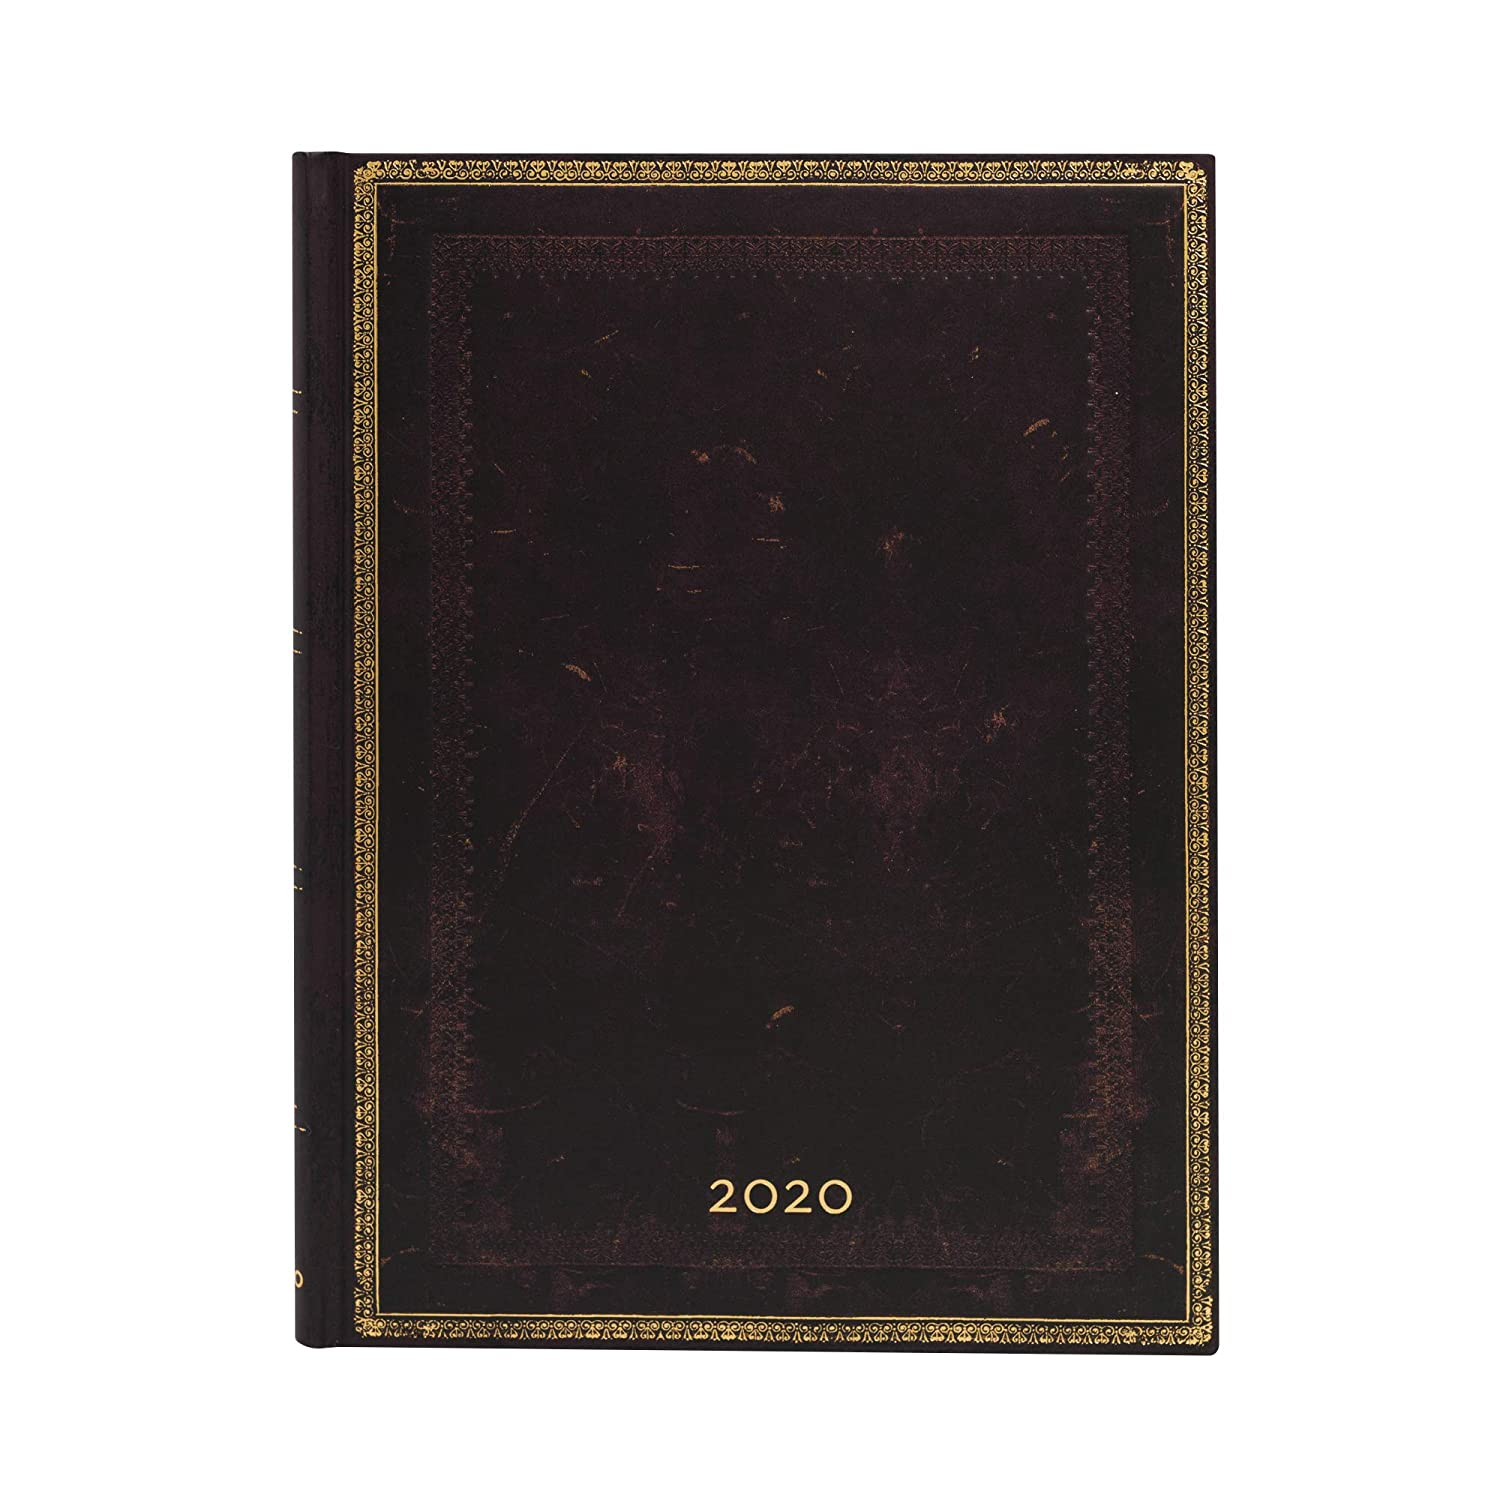 Amazon.com : Paperblanks 12 Month Calendar 2020 Black ...